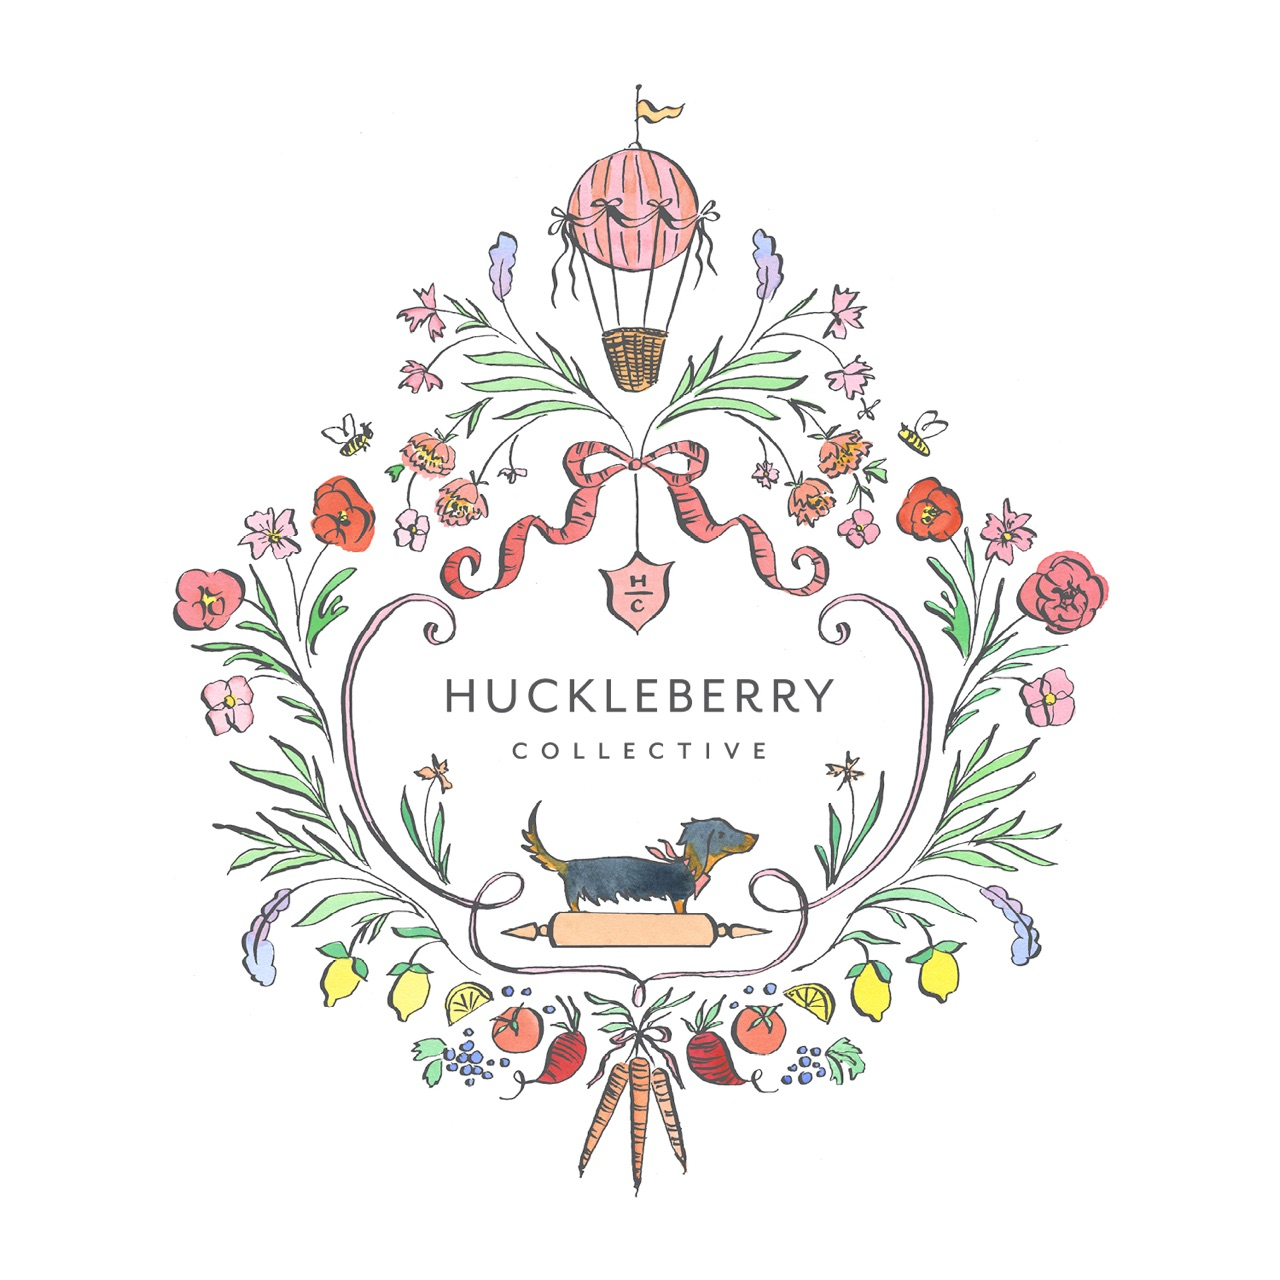 HUCKLEBERRY COLLECTIVE